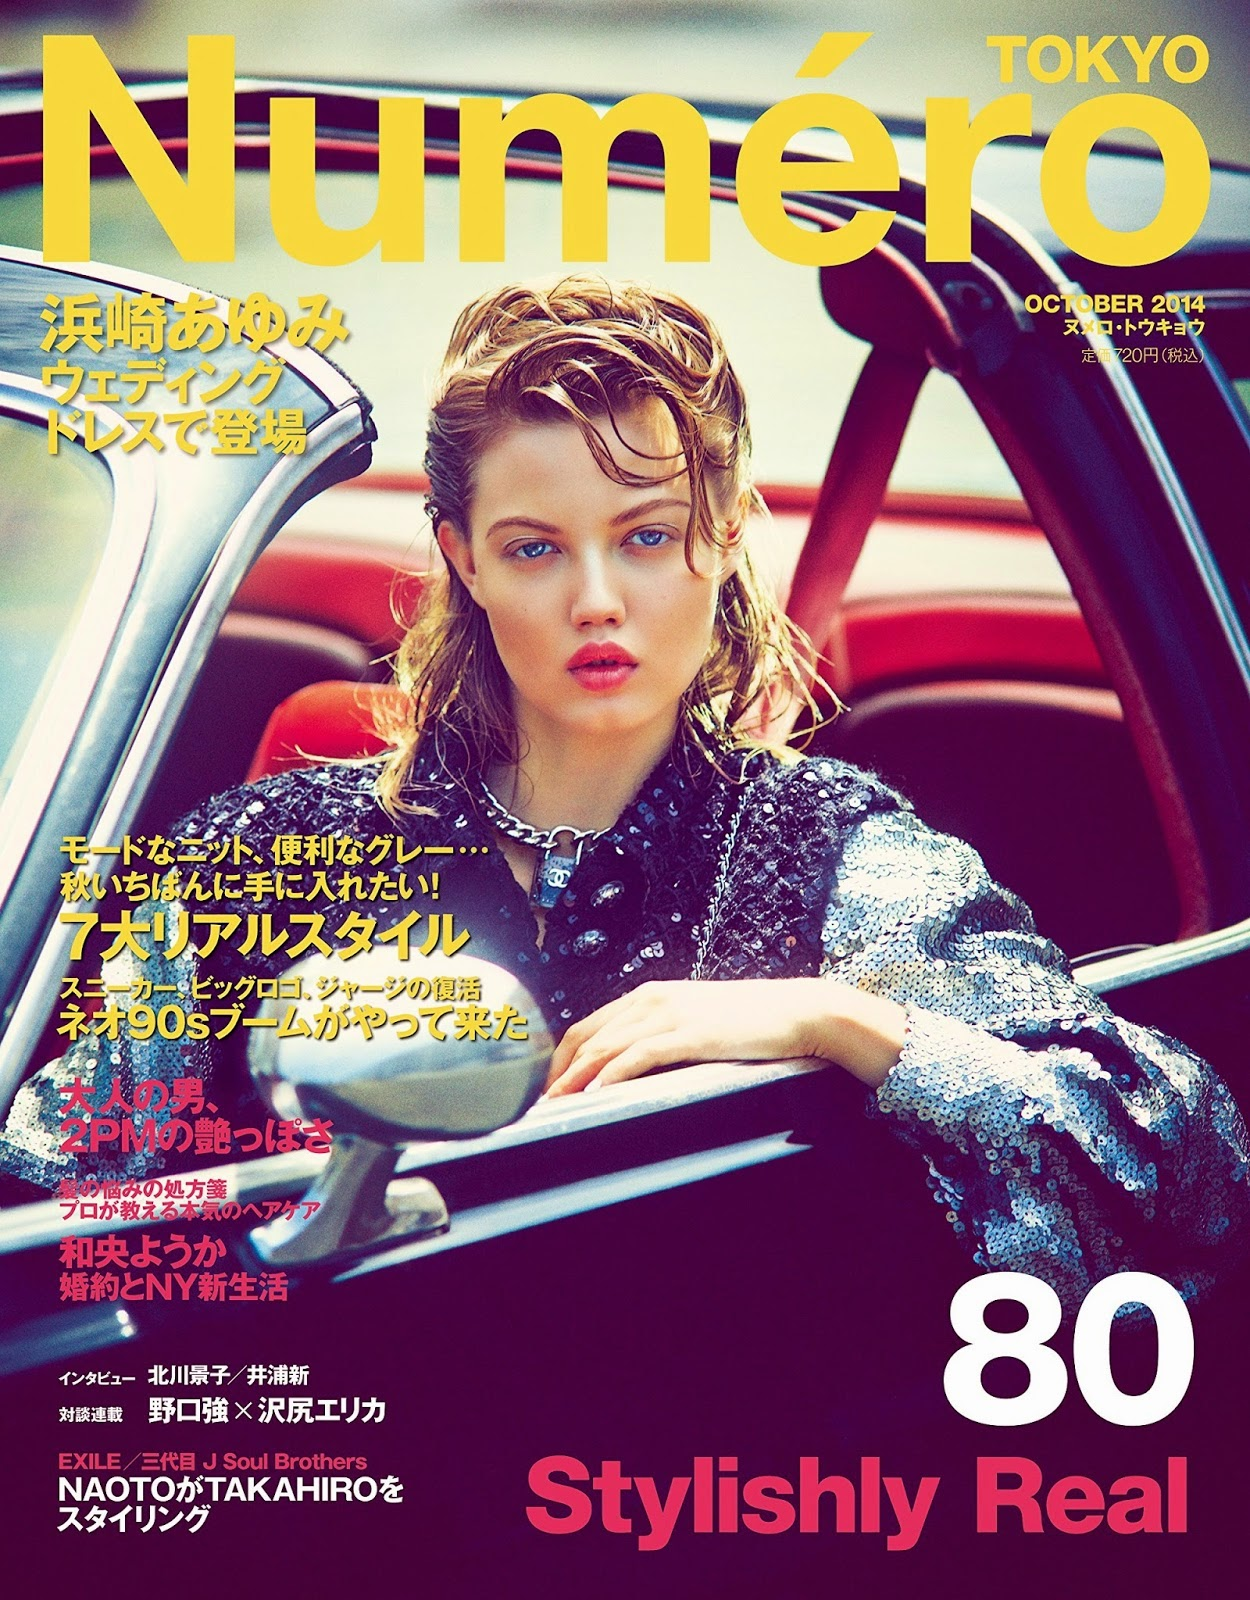 Lindsey Wixson by Guy Aroch for Numéro Tokyo Magazine, October 2014